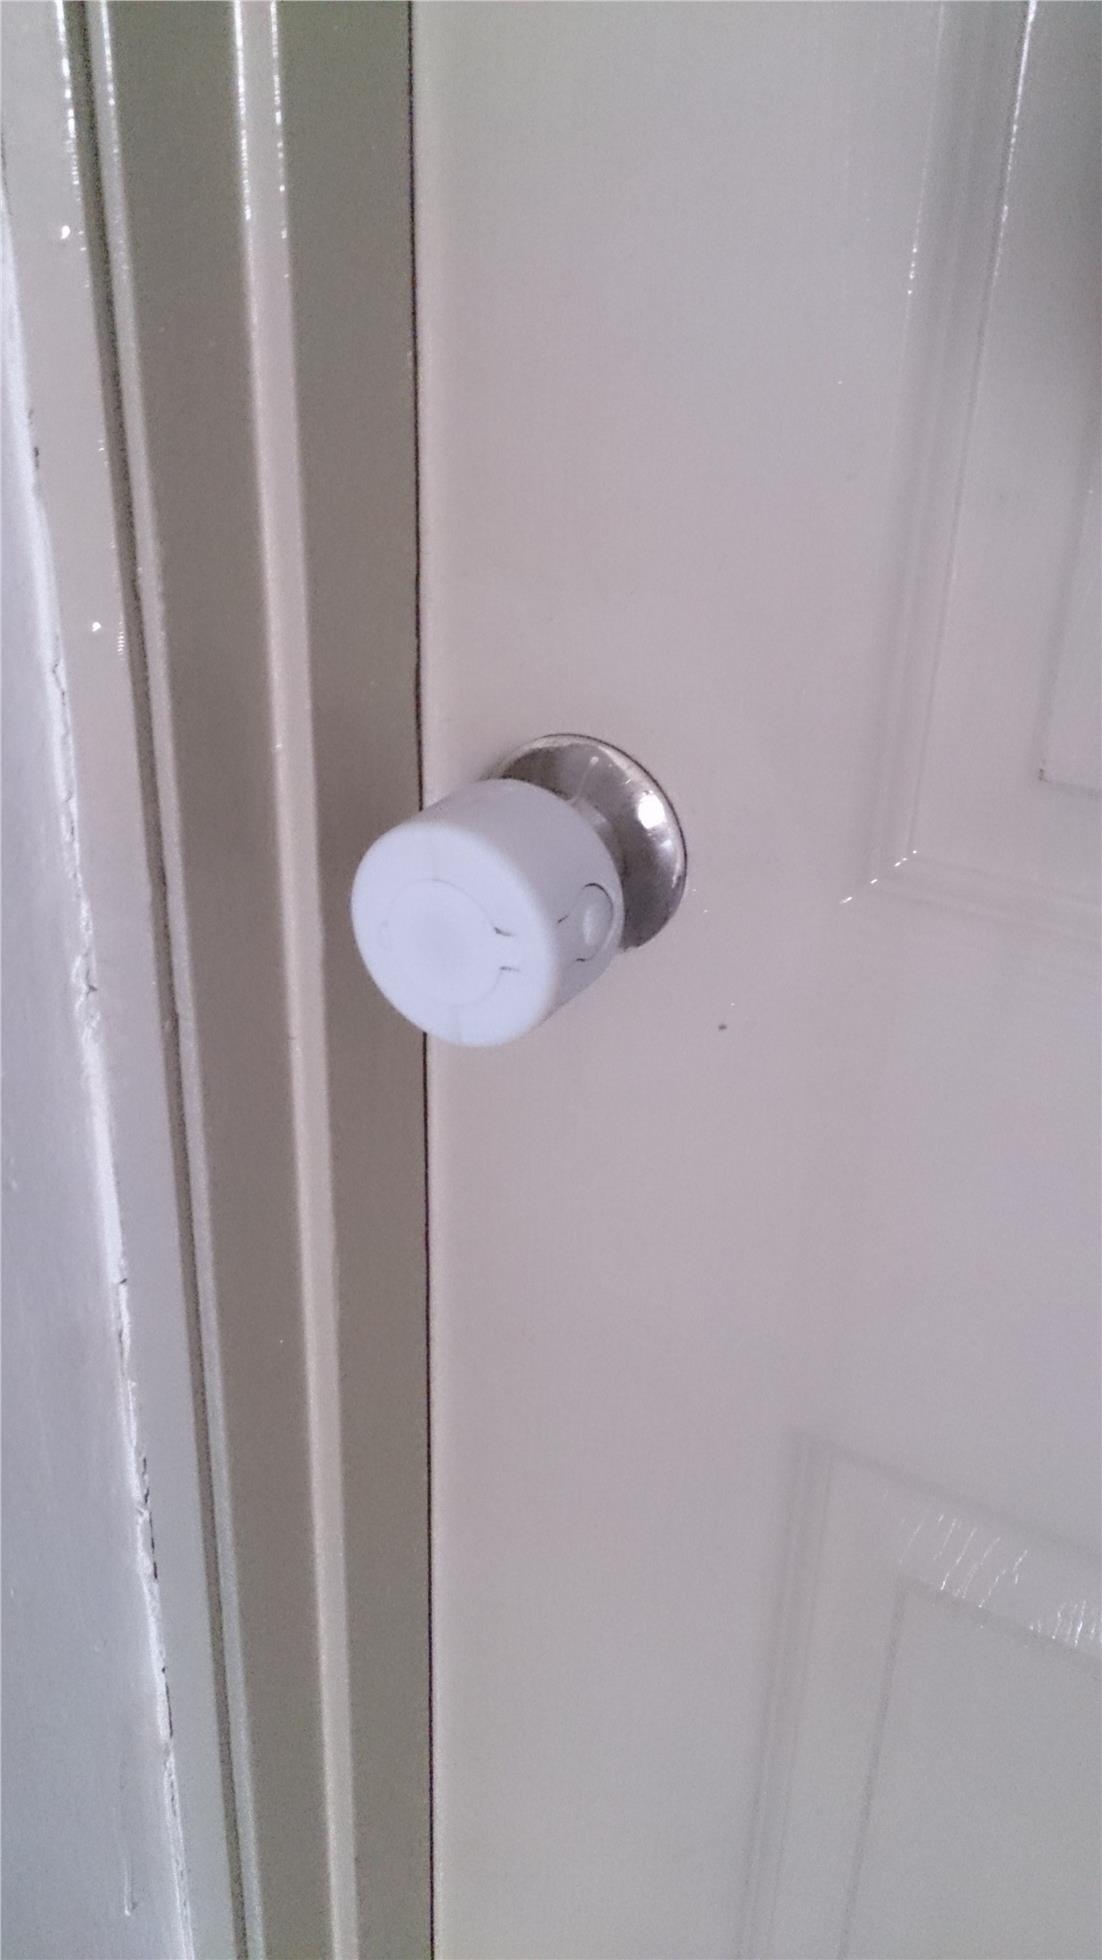 Child Safety Door Knob Covers Child Safety Door Knob Cover